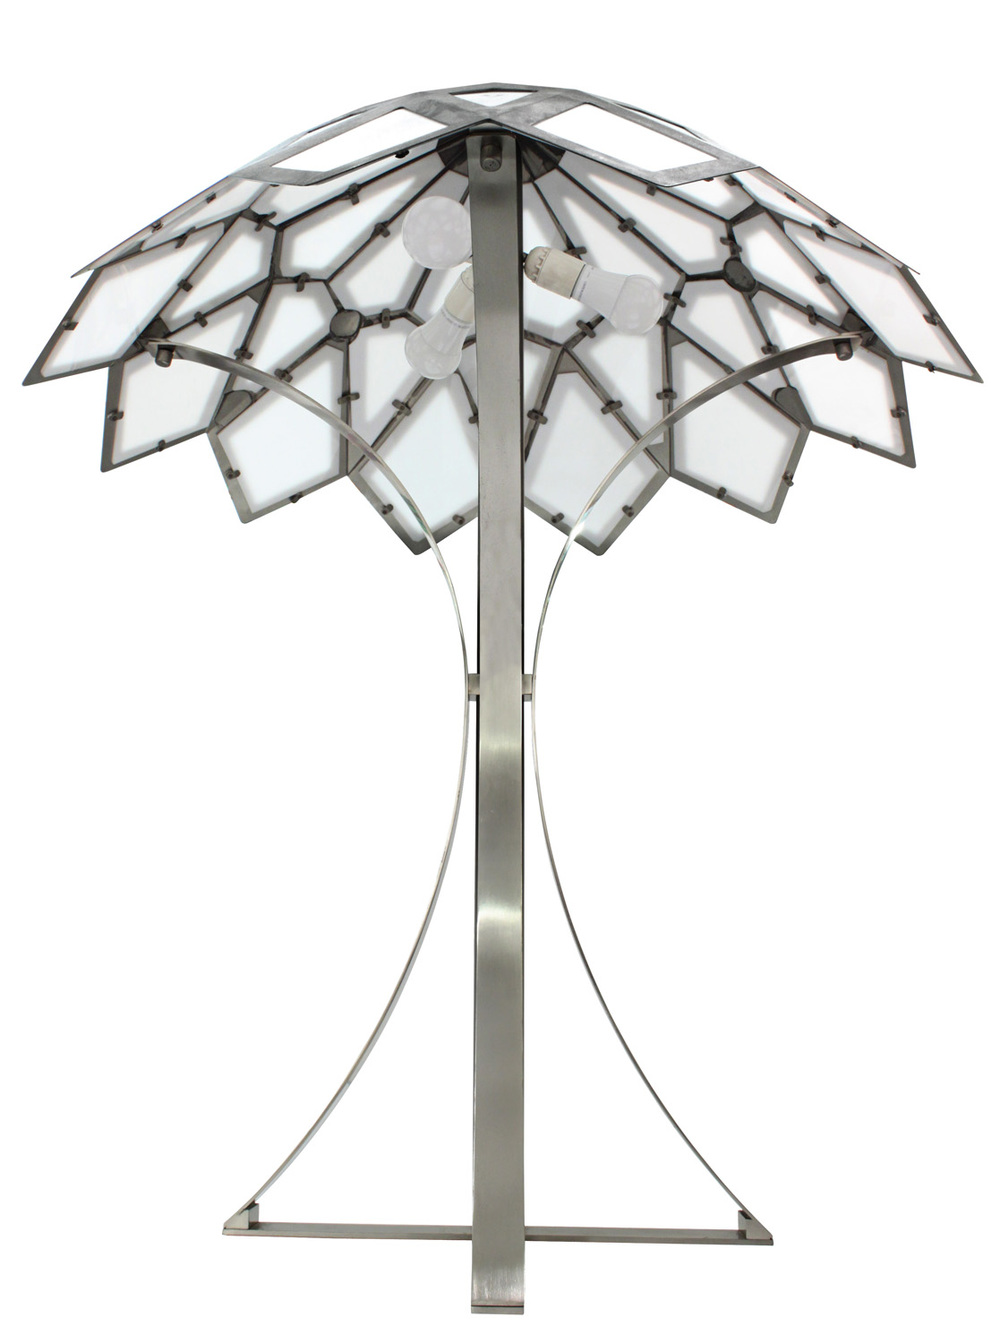 Crespi 500 lrg steel+white perspex tablelamp223 detail1 hires.jpg